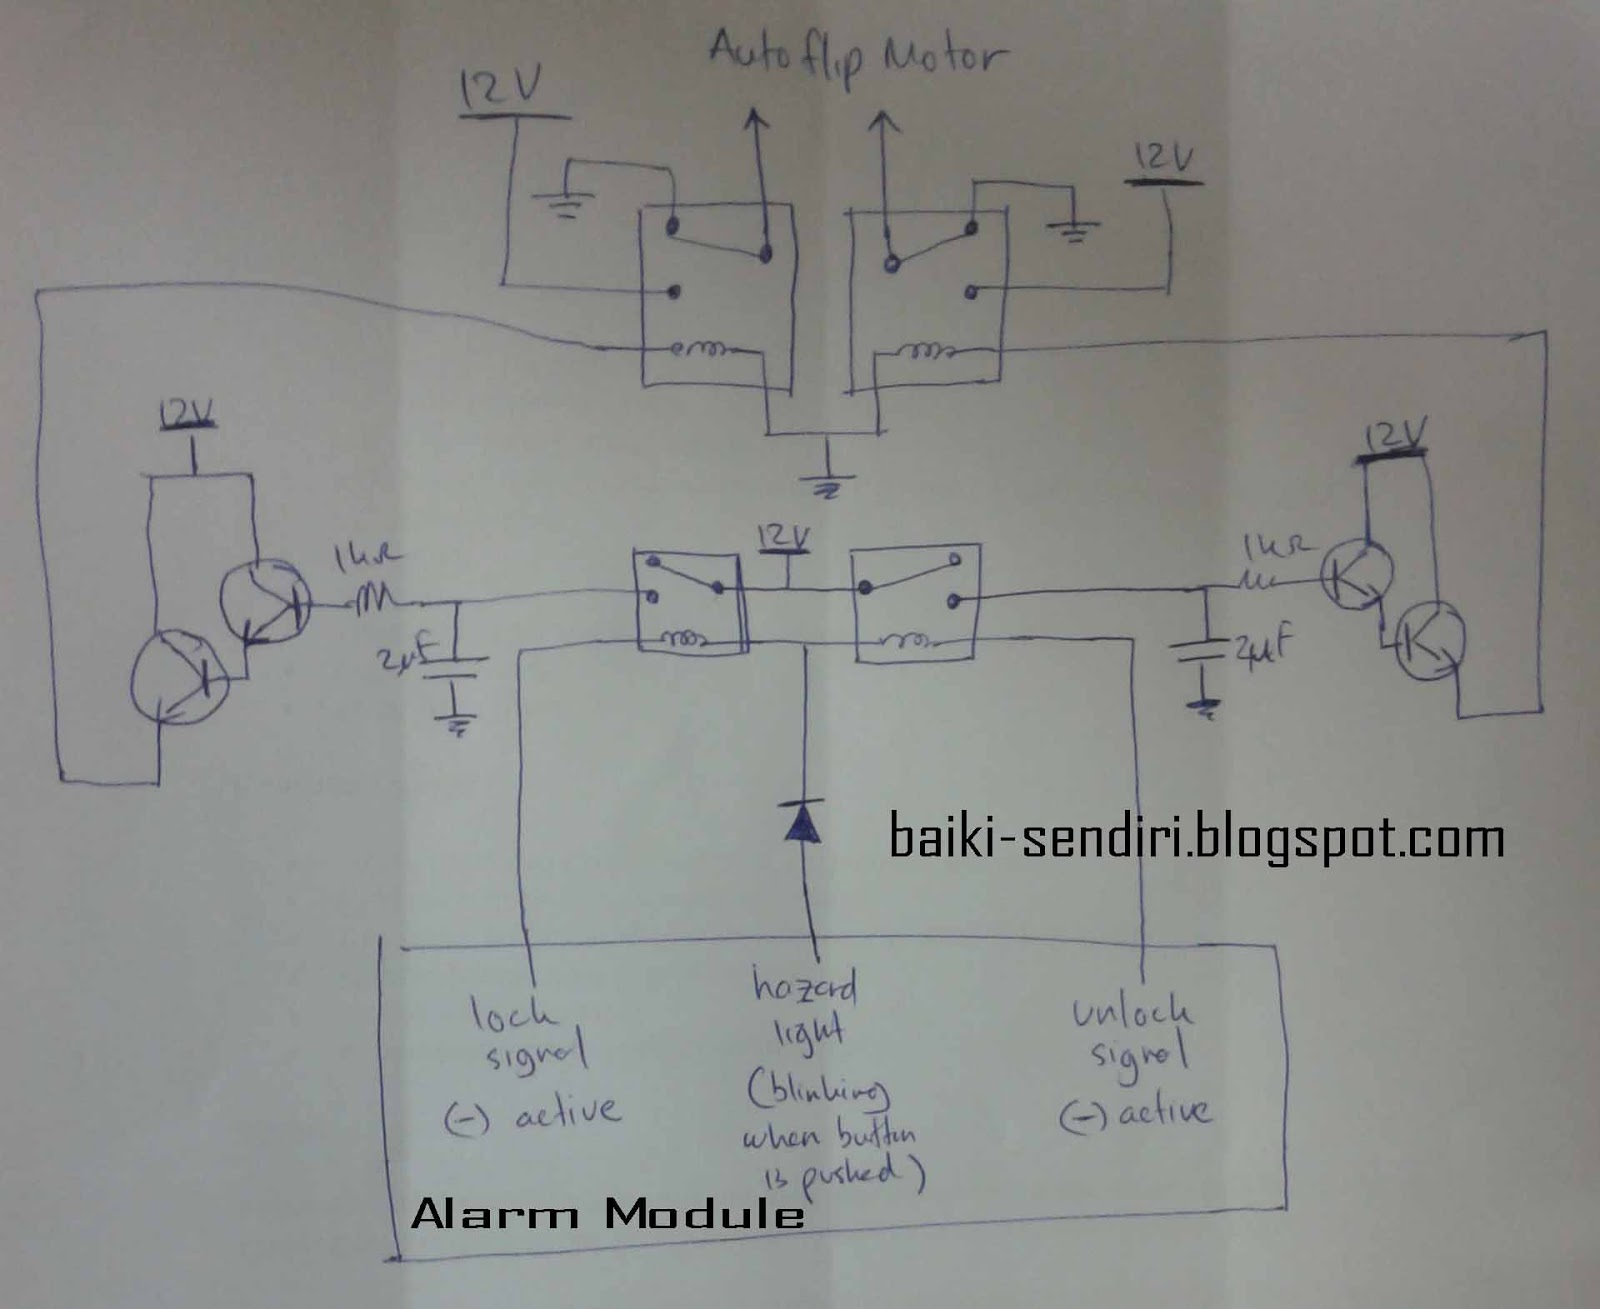 Wiring Pyle Diagram Ple702b Library Stereo Free Download Schematic Diy Fix On Your Own Circuit Honda Prelude 3rd Ba5 With Also Notifier Fire Daihatsu Alarm